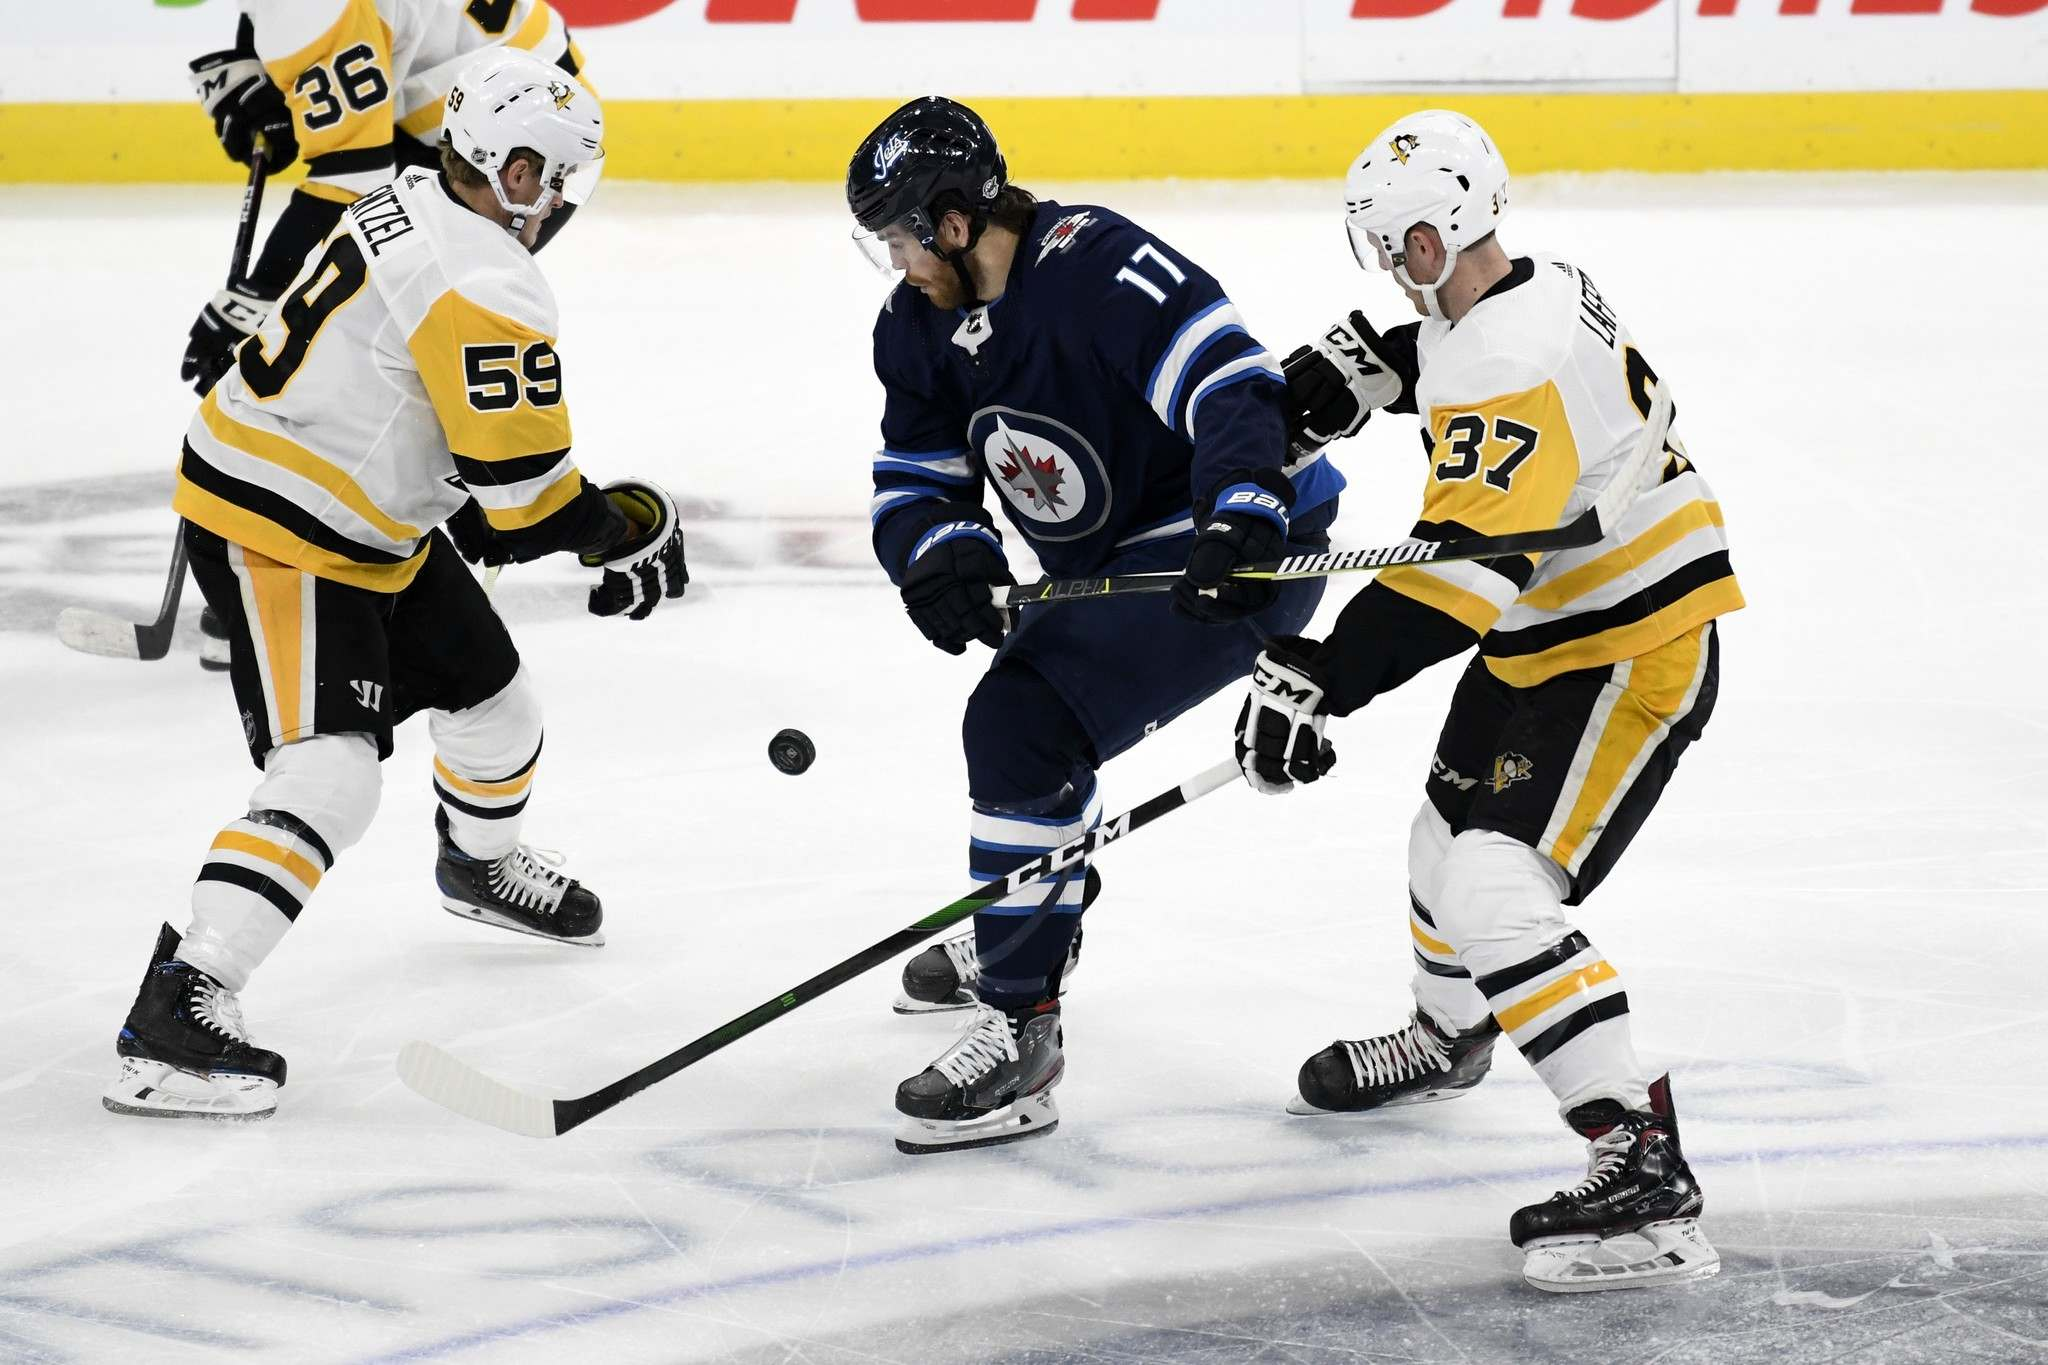 "FRED GREENSLADE / THE CANADIAN PRESS</p> <p>Winnipeg Jets' Adam Lowry (17) battles with Pittsburgh Penguins' Jake Guentzel (59) and Sam Lafferty (37) for the puck during first period NHL action in Winnipeg on Sunday, Oct. 13, 2019.</p> <p>""></a><figcaption readability="